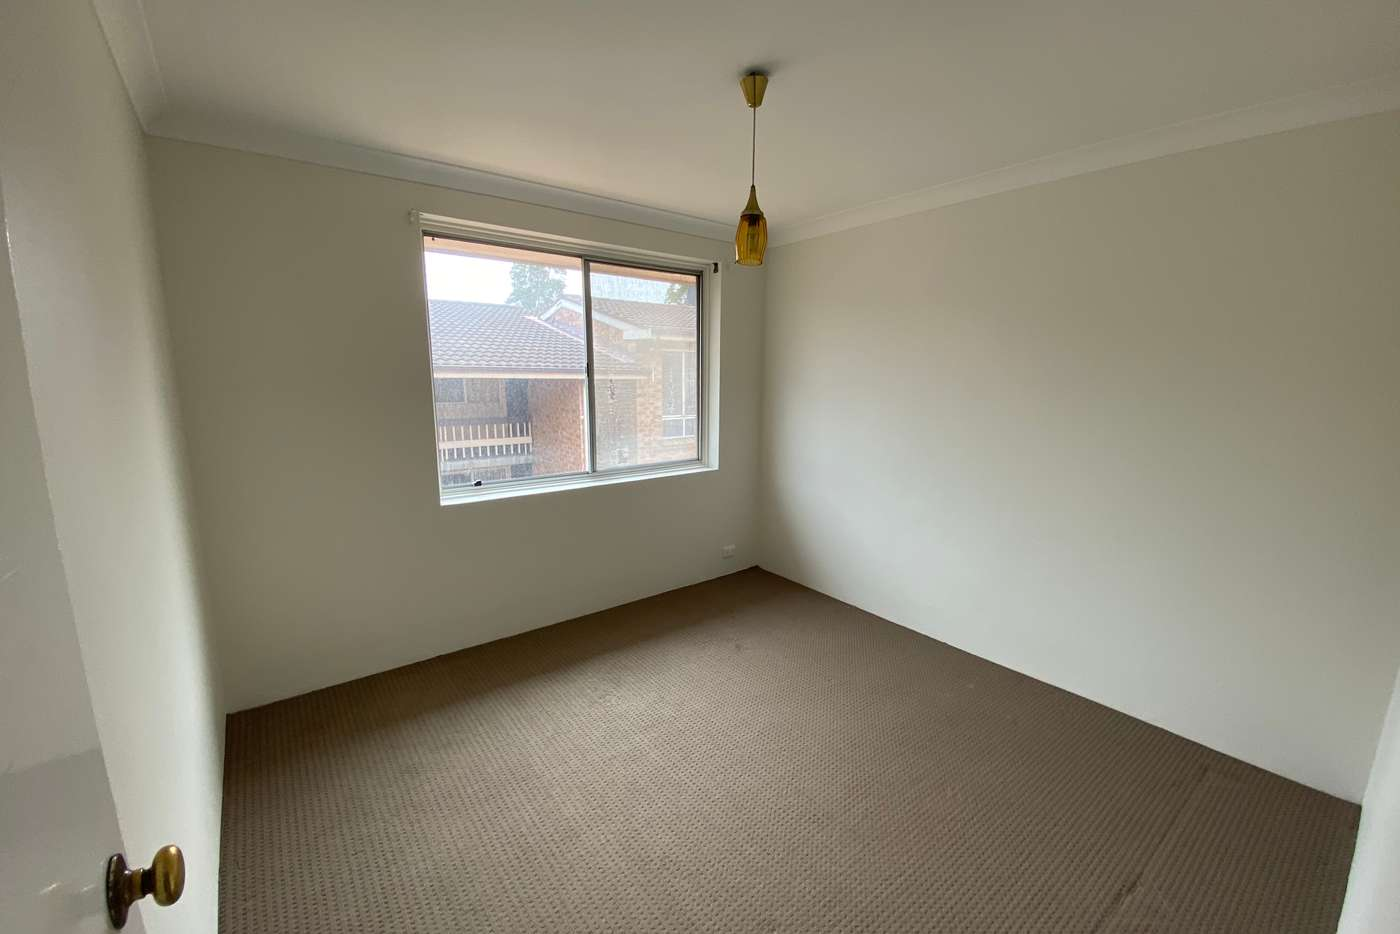 Sixth view of Homely townhouse listing, 6/9 Virginia Street, Wollongong NSW 2500